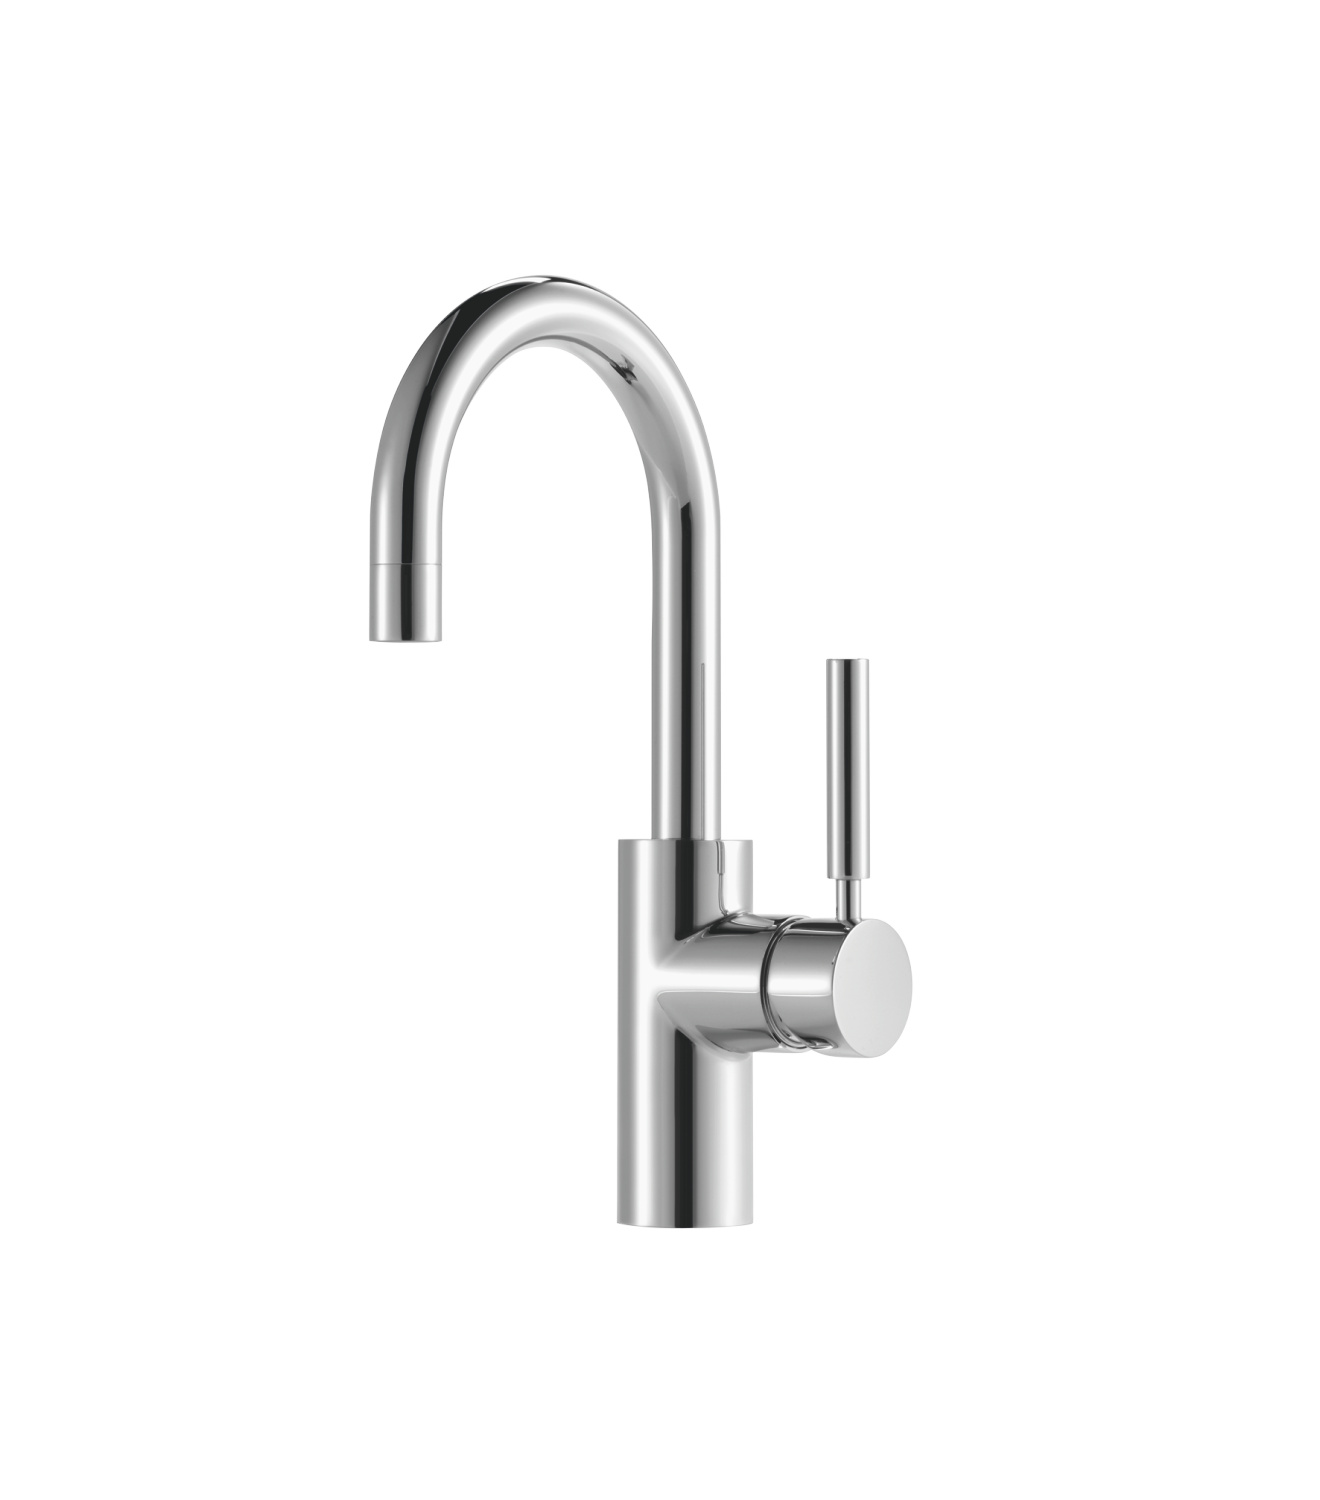 Single-lever basin mixer with pop-up waste - polished chrome - 33 510 885-00